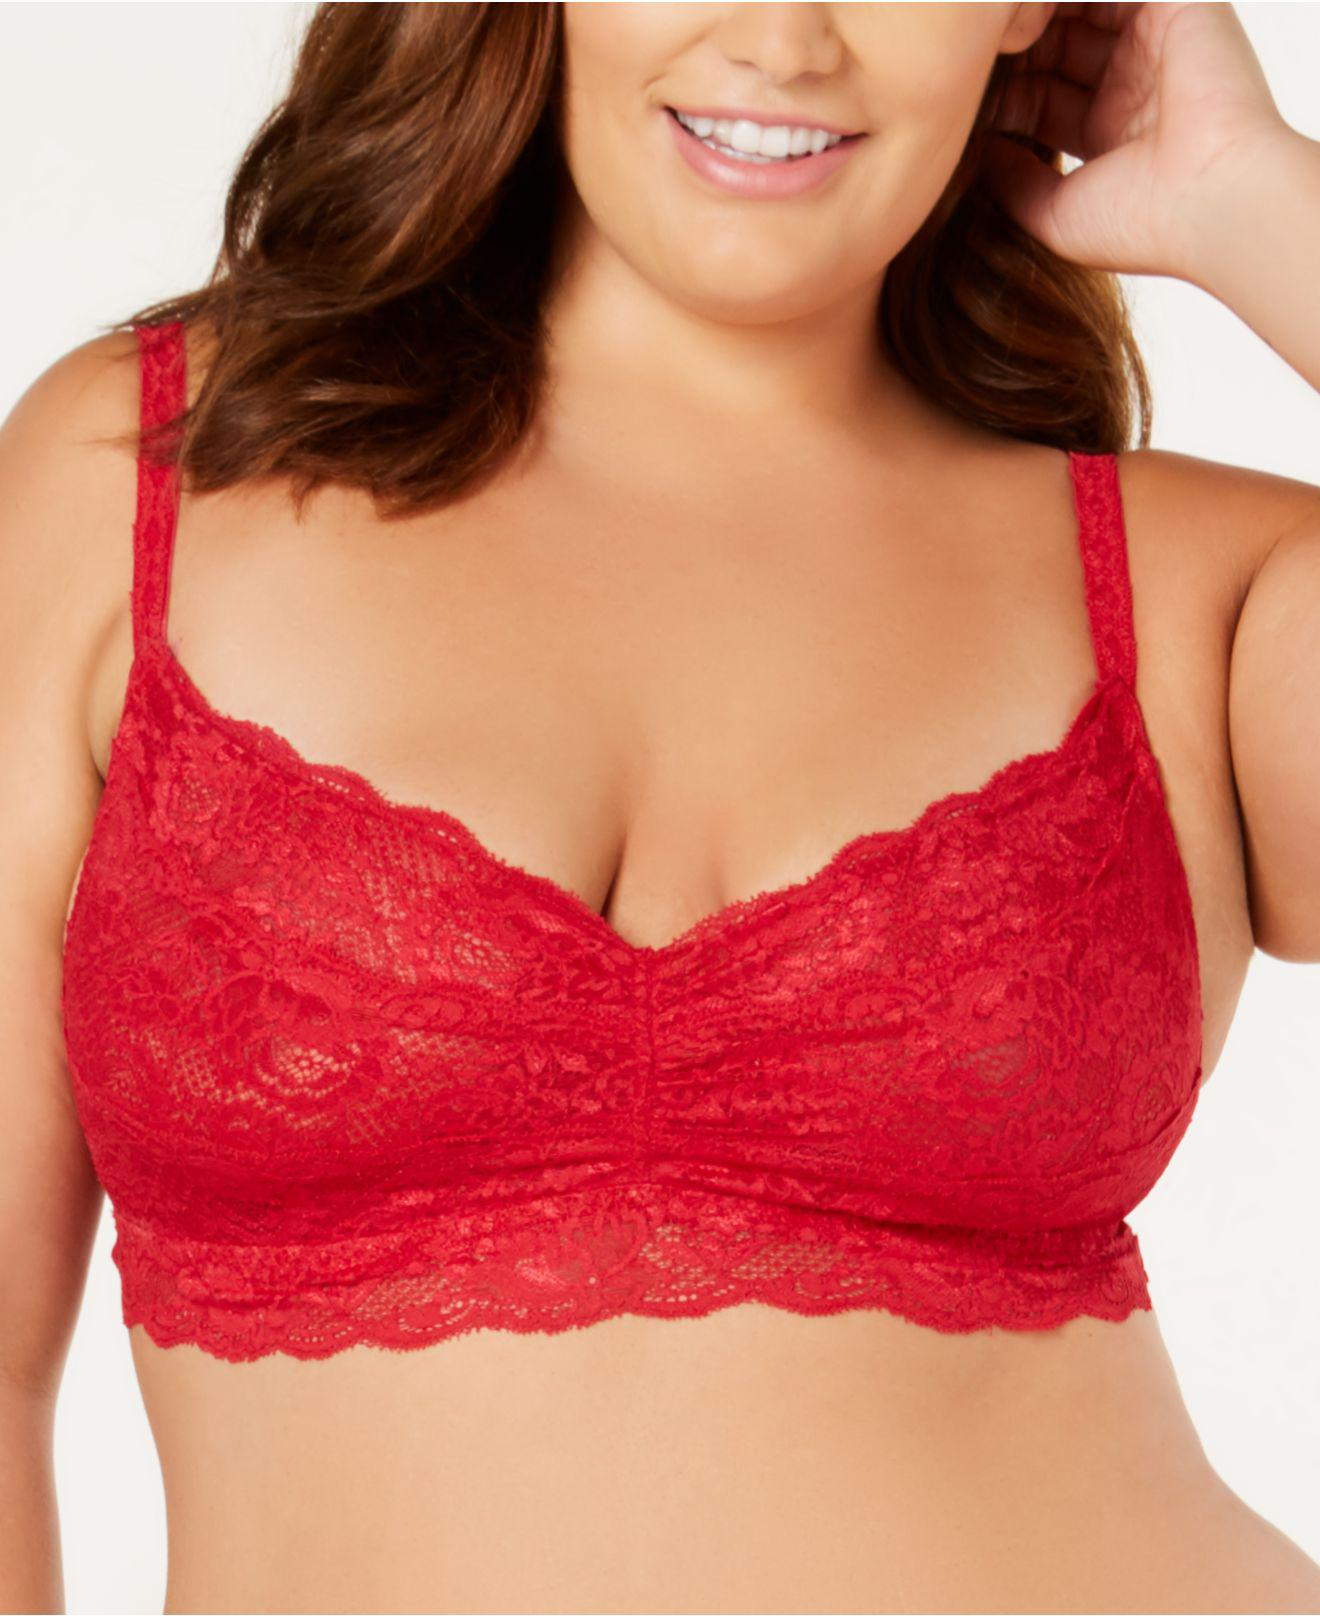 7be4f65aef130 Cosabella. Women s Red Never Say Never Plus Size Lace Sweetie Bralette  Never1301p